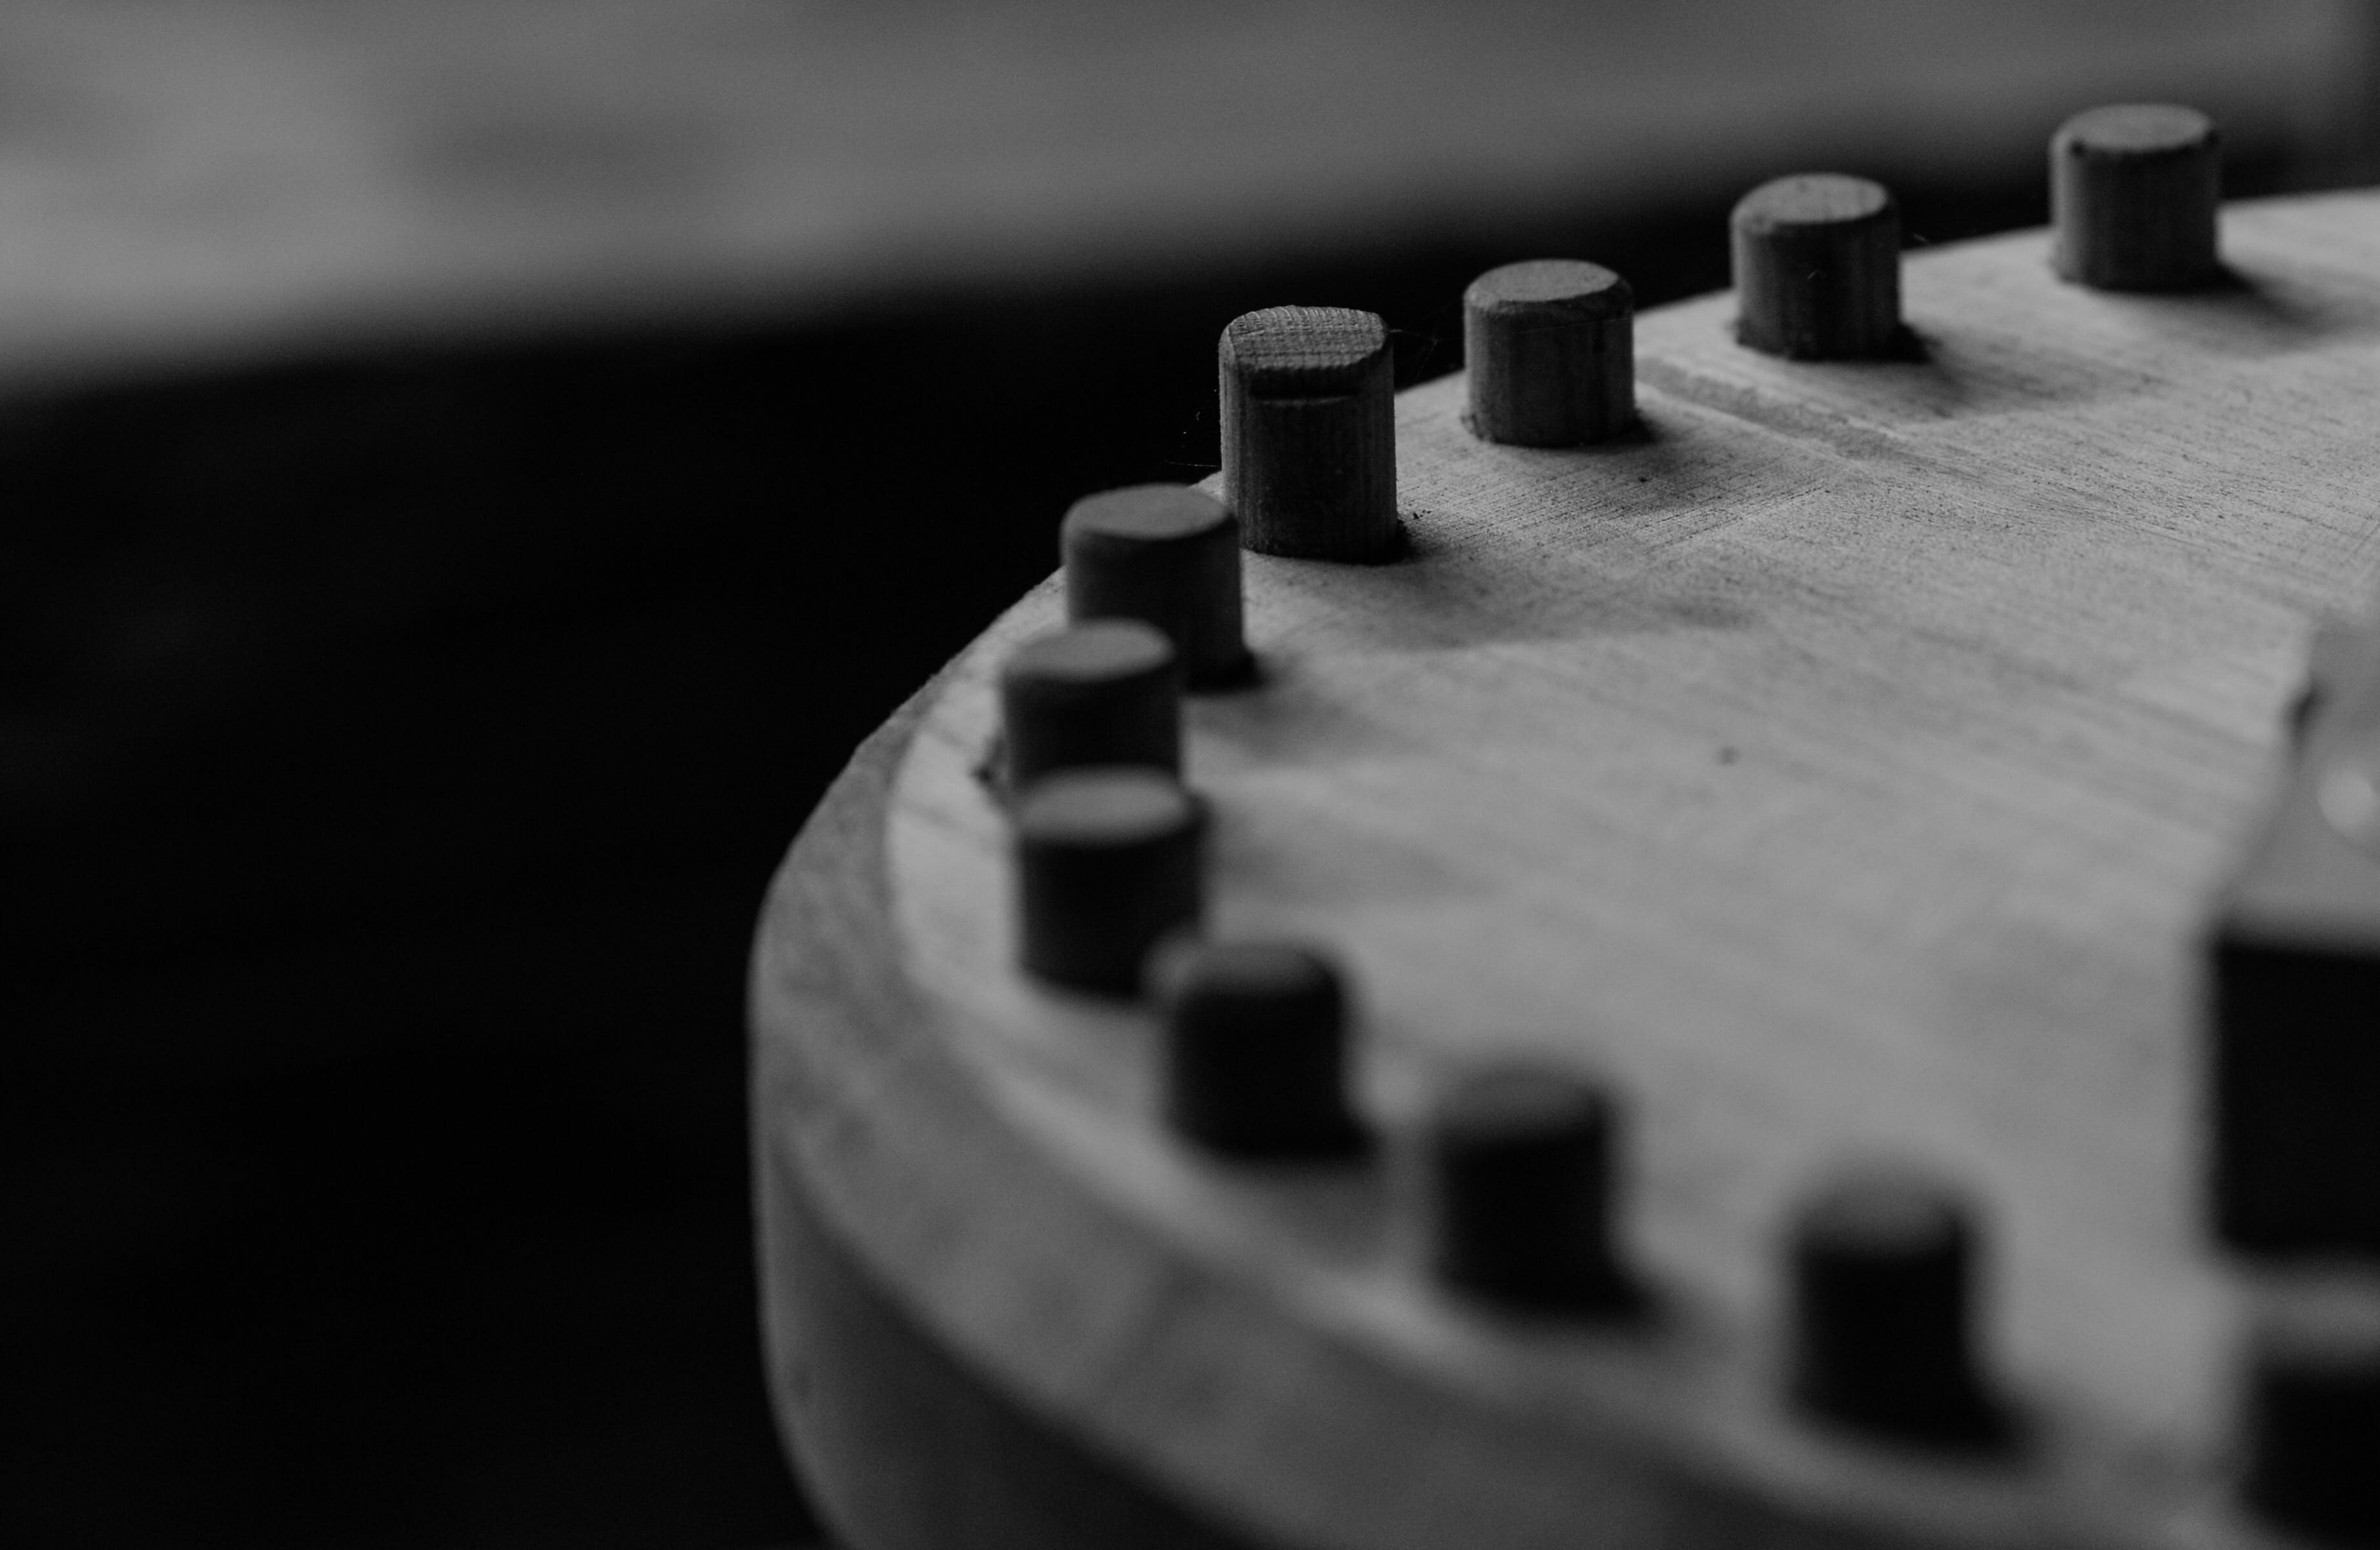 Close-up Photography of a Wooden Thing